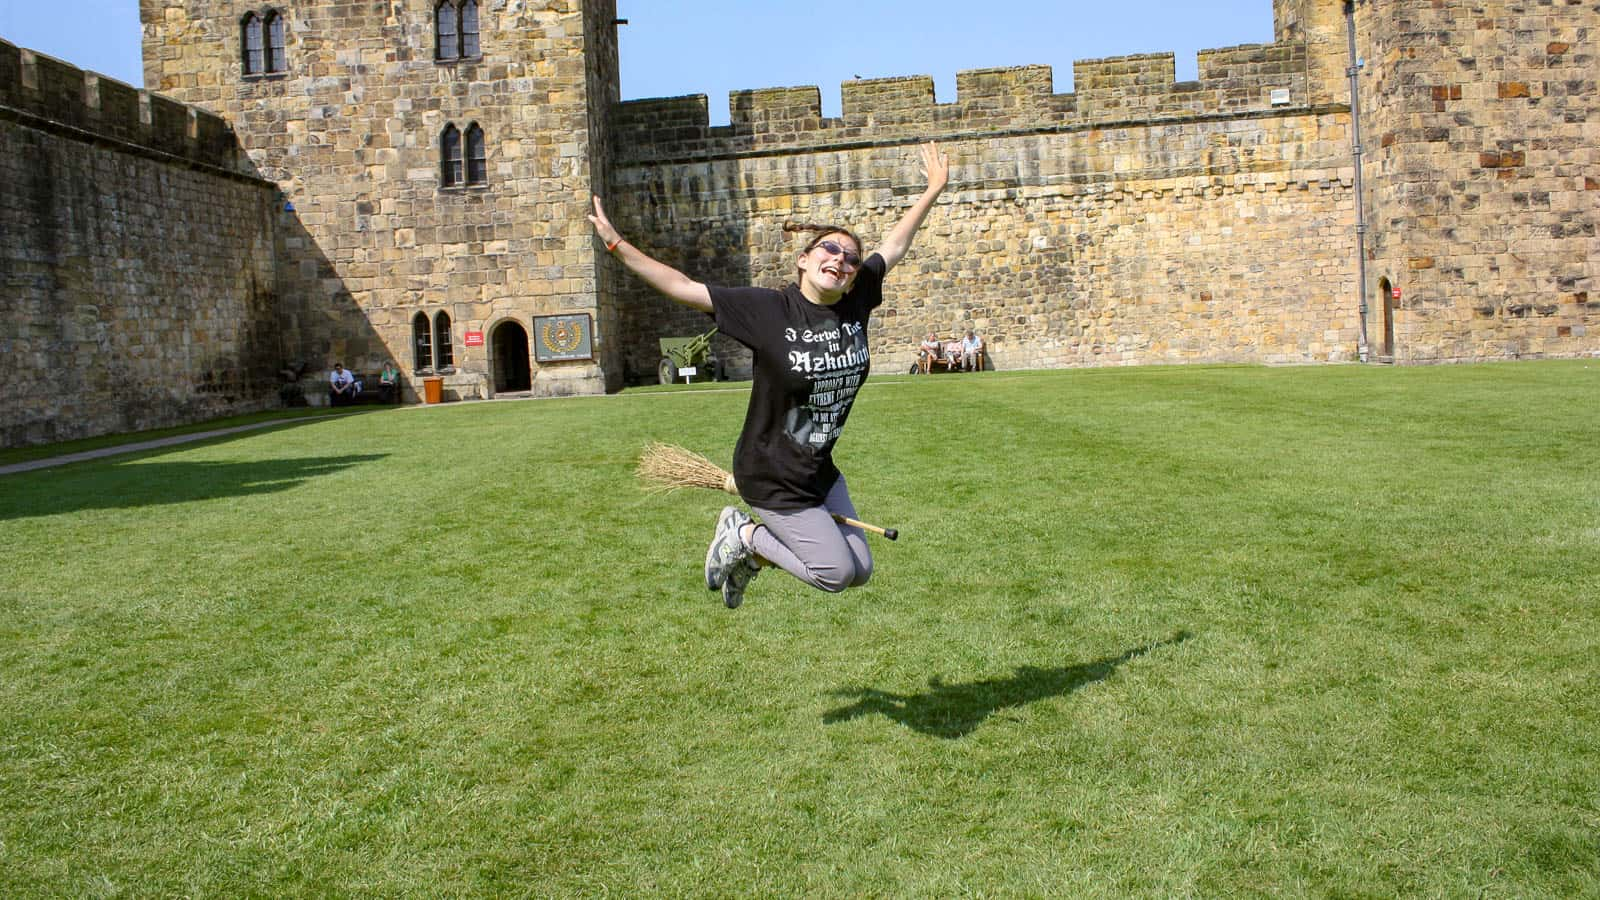 Broomstick Flying Lessons at Alnwick Castle in England